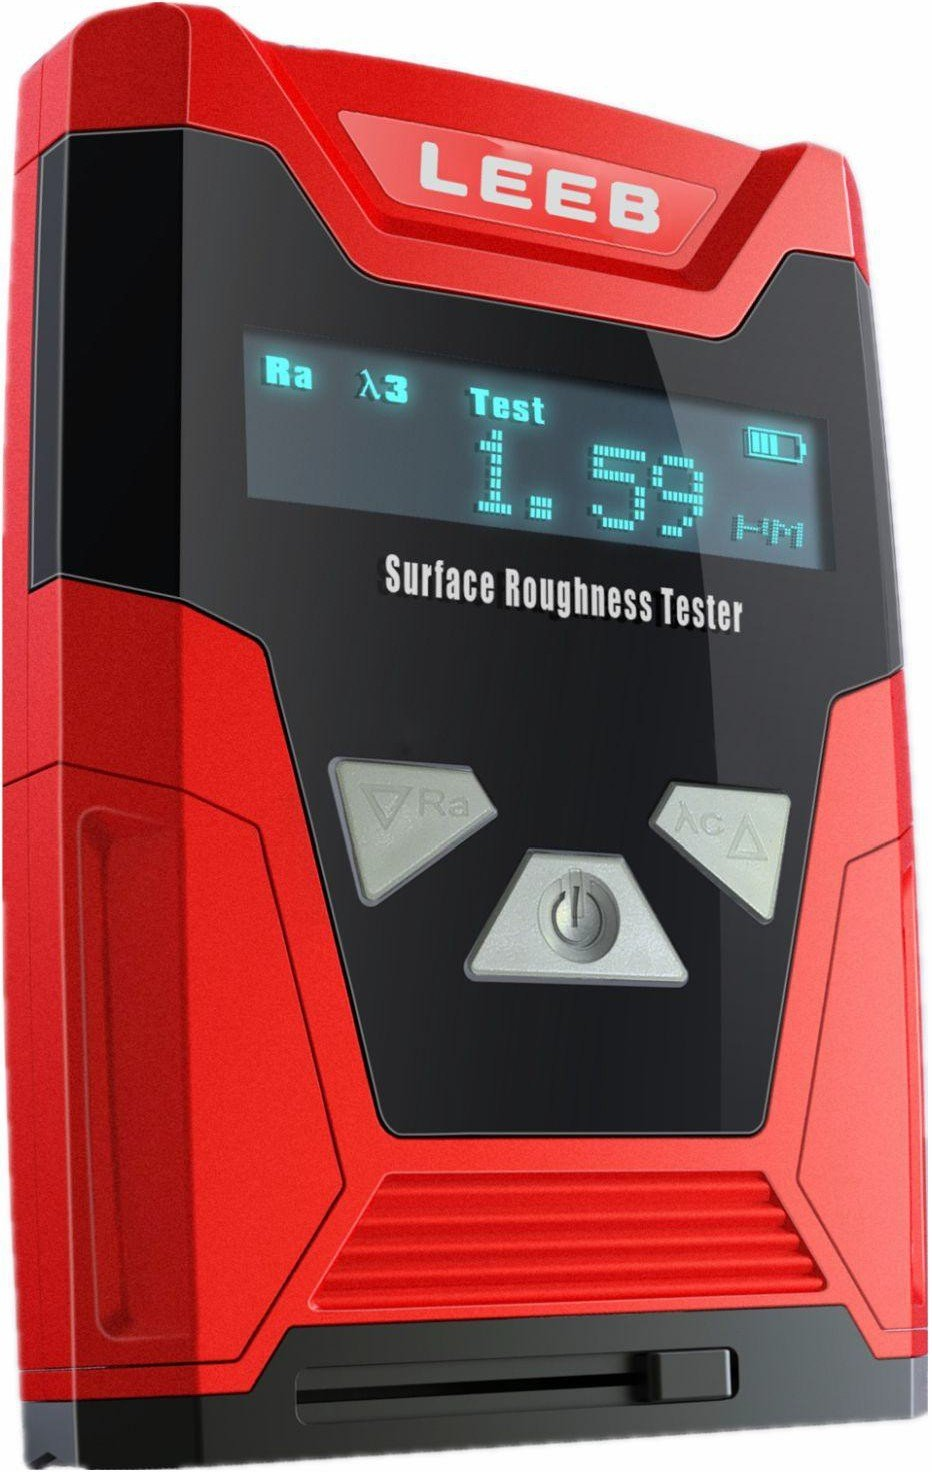 Surface Roughness Tester Leeb 410 - Ra:0.05-1 O .Oµm Rz:0.1-50µm by TestCoat